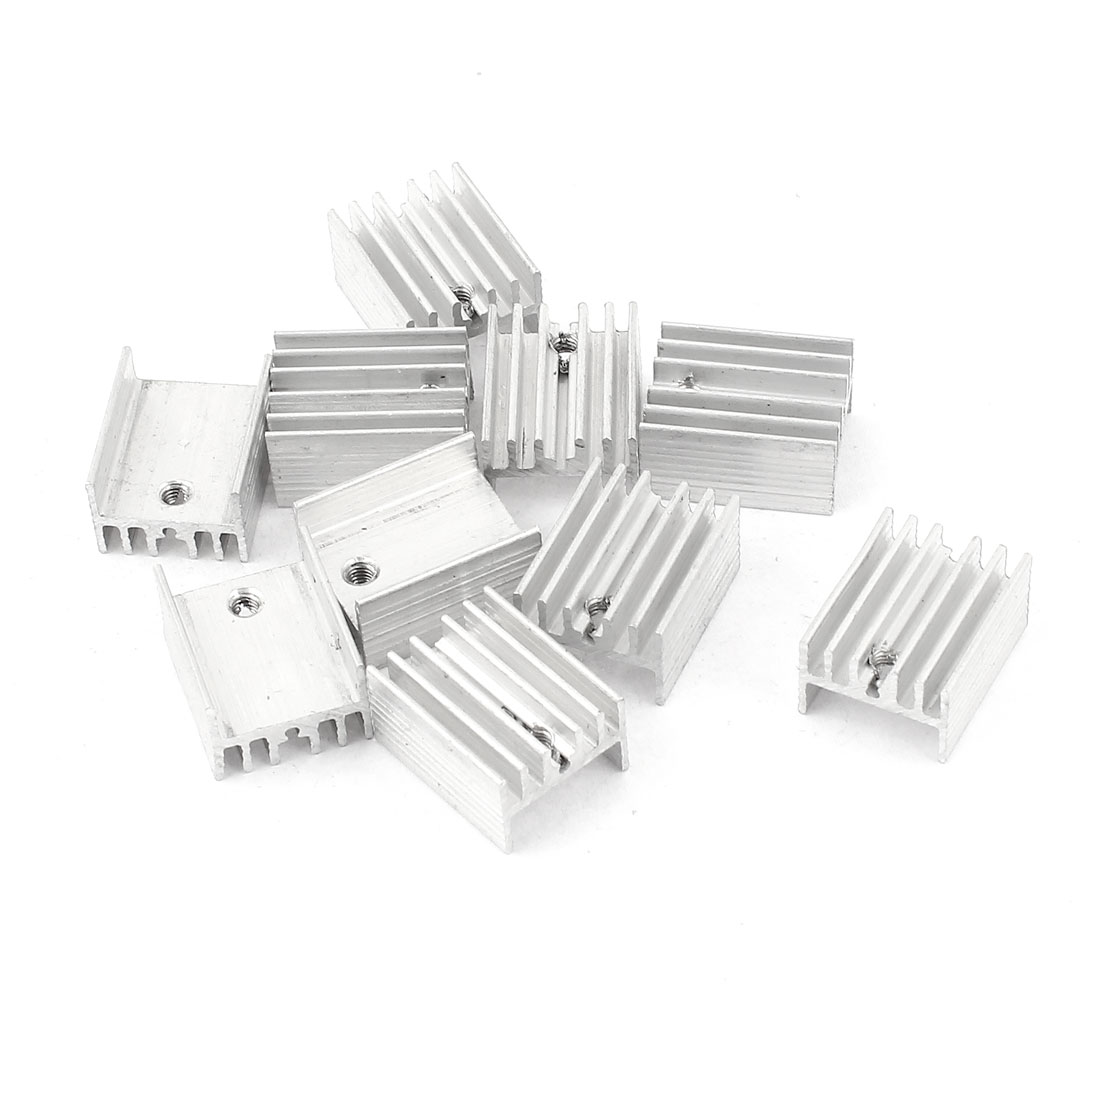 10 Pcs 2.5mm Hole Aluminium 19mmx15mmx10mm Heatsink Heat Sink Cooling Cooler Fin